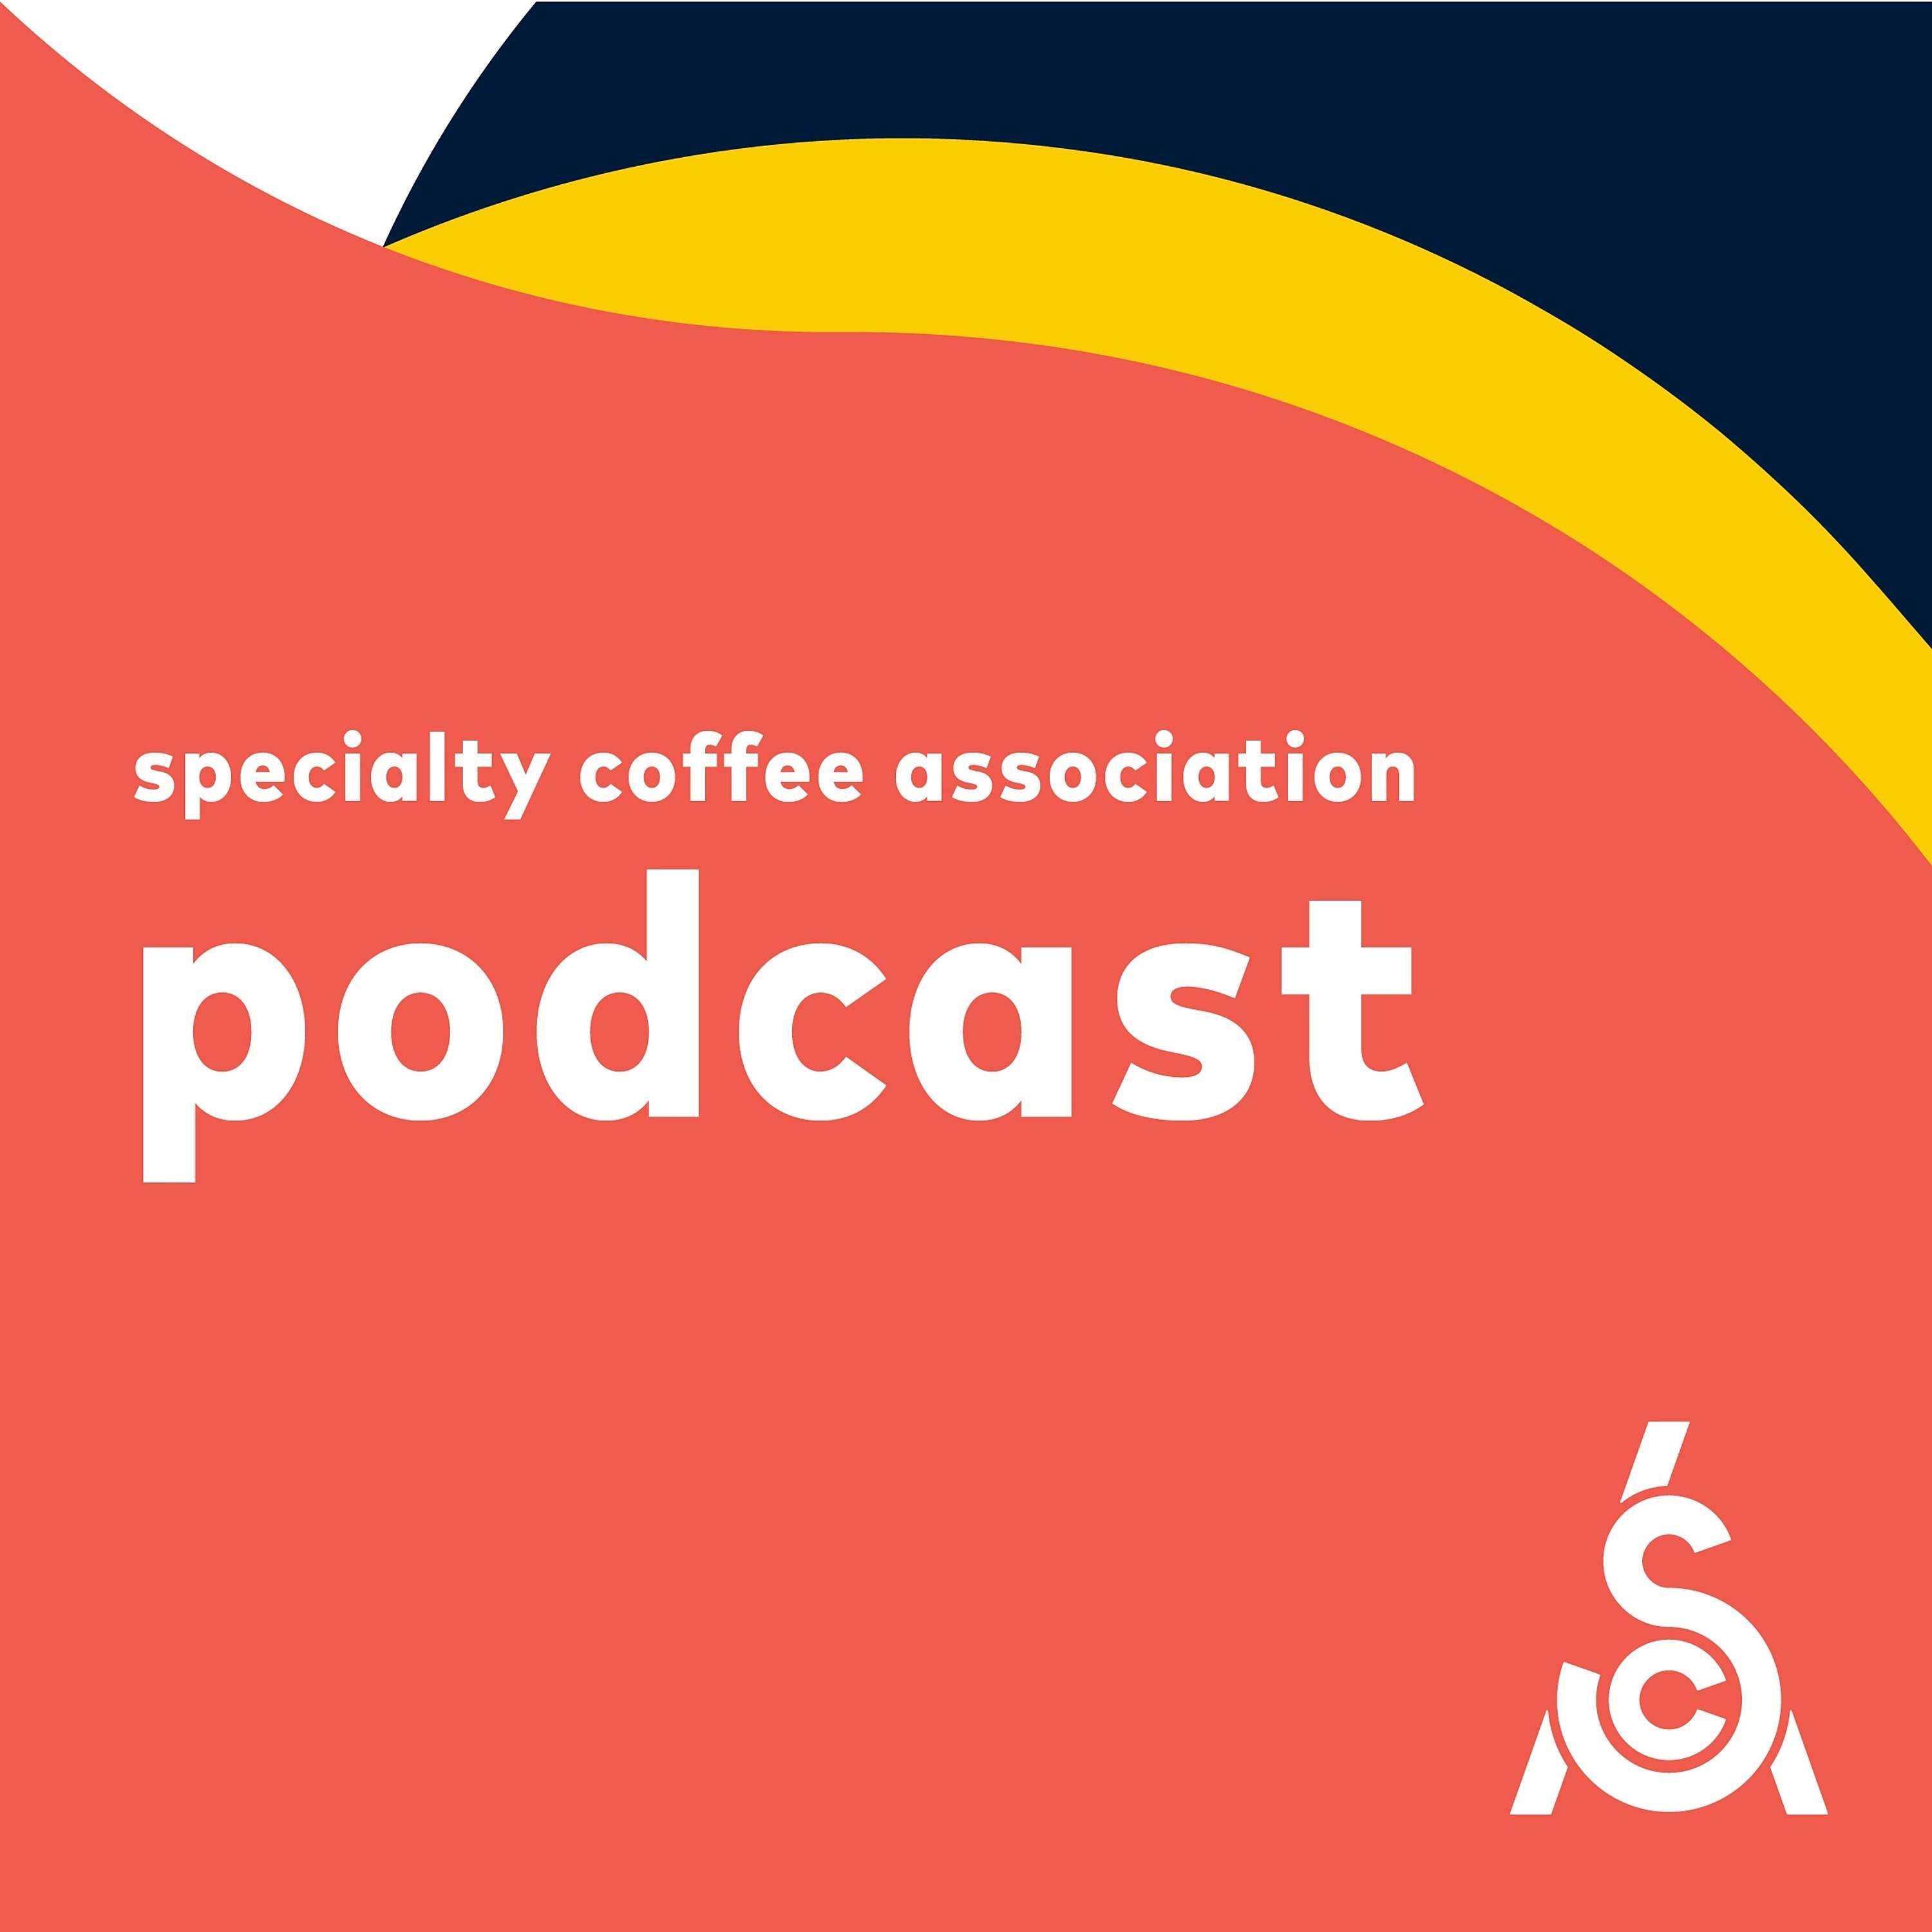 #92 | An Unequal Pair: Coffee Industry Leaders and Farmers Discuss Needs and Alignment | WOC Lectures 2019